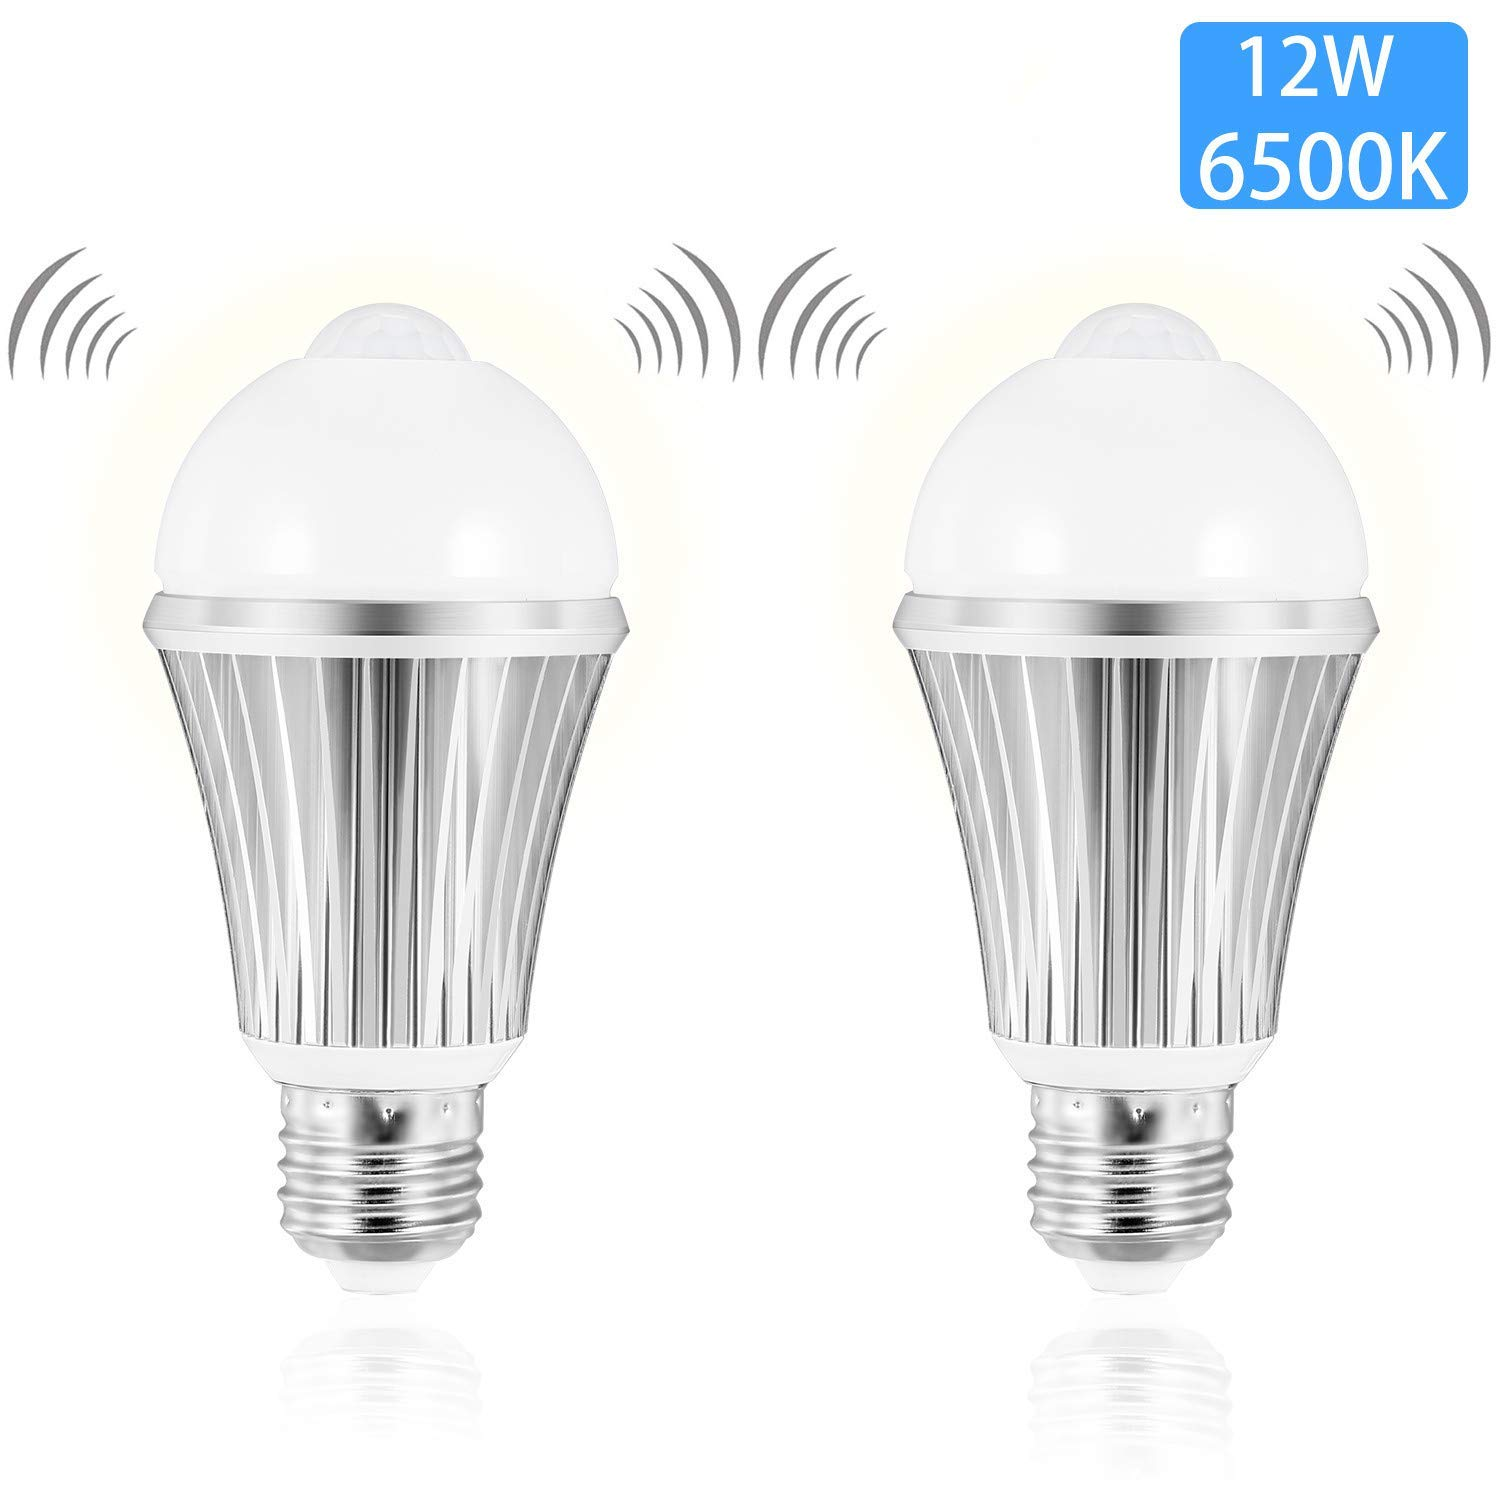 Motion Sensor Light Bulb, Witshine LED 12W 1000LM 100W Equivalent, Dusk to Dawn Ambilent Light Sensor, E26 Base Indoor Outdoor Light Bulbs Cool White 6500K for Wall Lighting Porch (2 Pack)